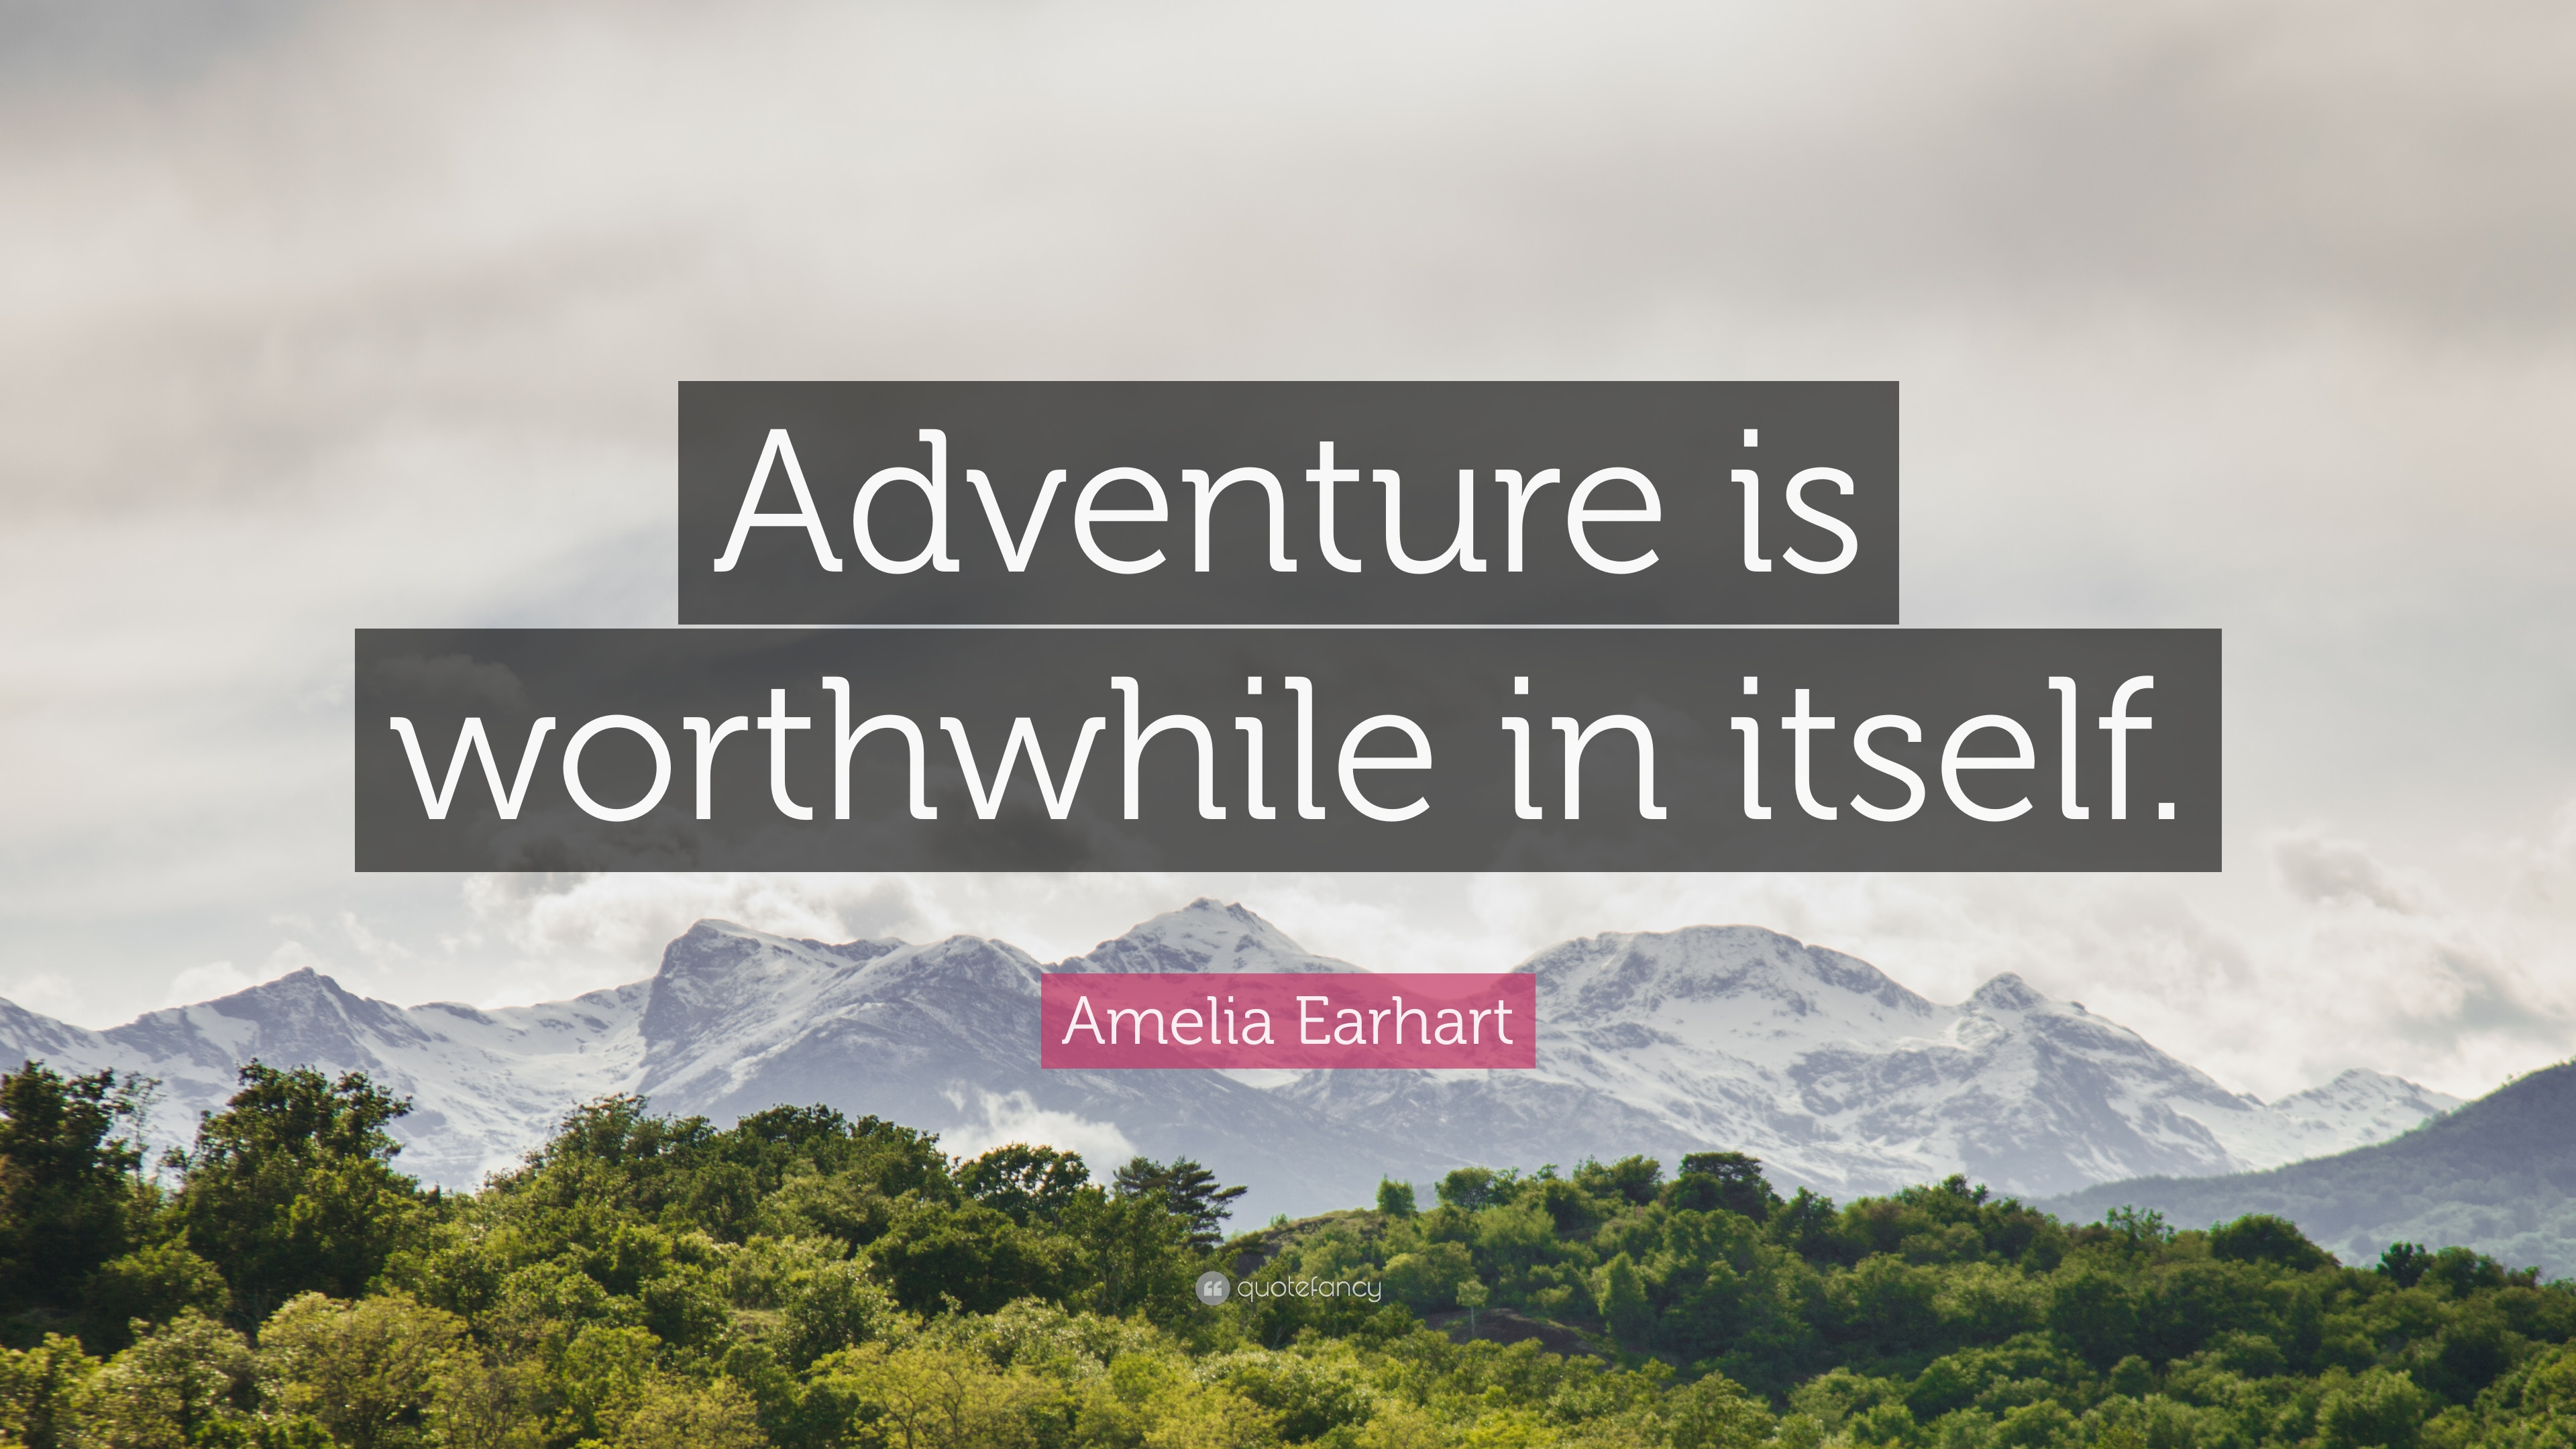 Adventure is worthwhile in itself meaning